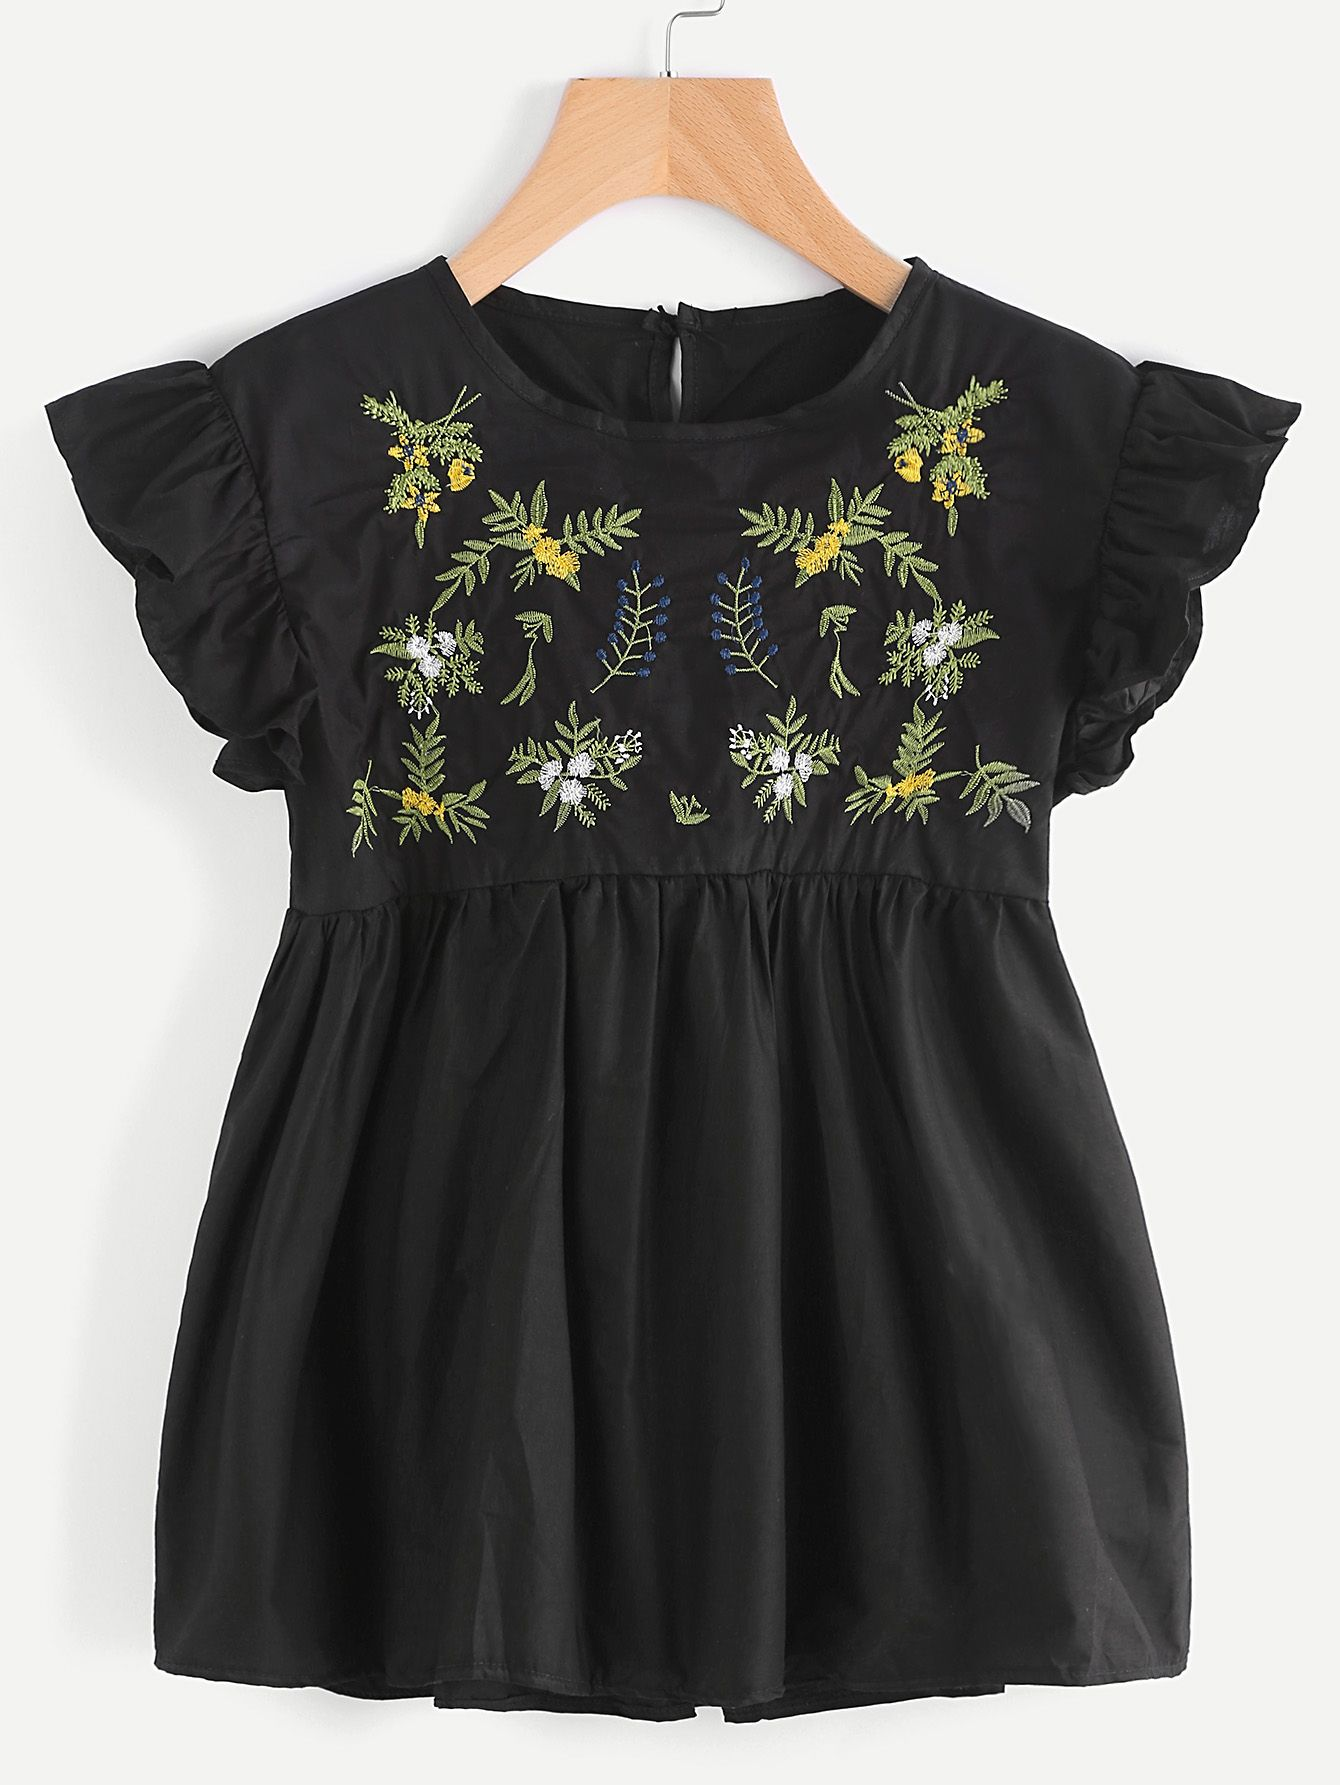 Shop Butterfly Sleeve Embroidered Keyhole Back Smock Blouse online. SheIn offers Butterfly Sleeve Embroidered Keyhole Back Smock Blouse & more to fit your fashionable needs.